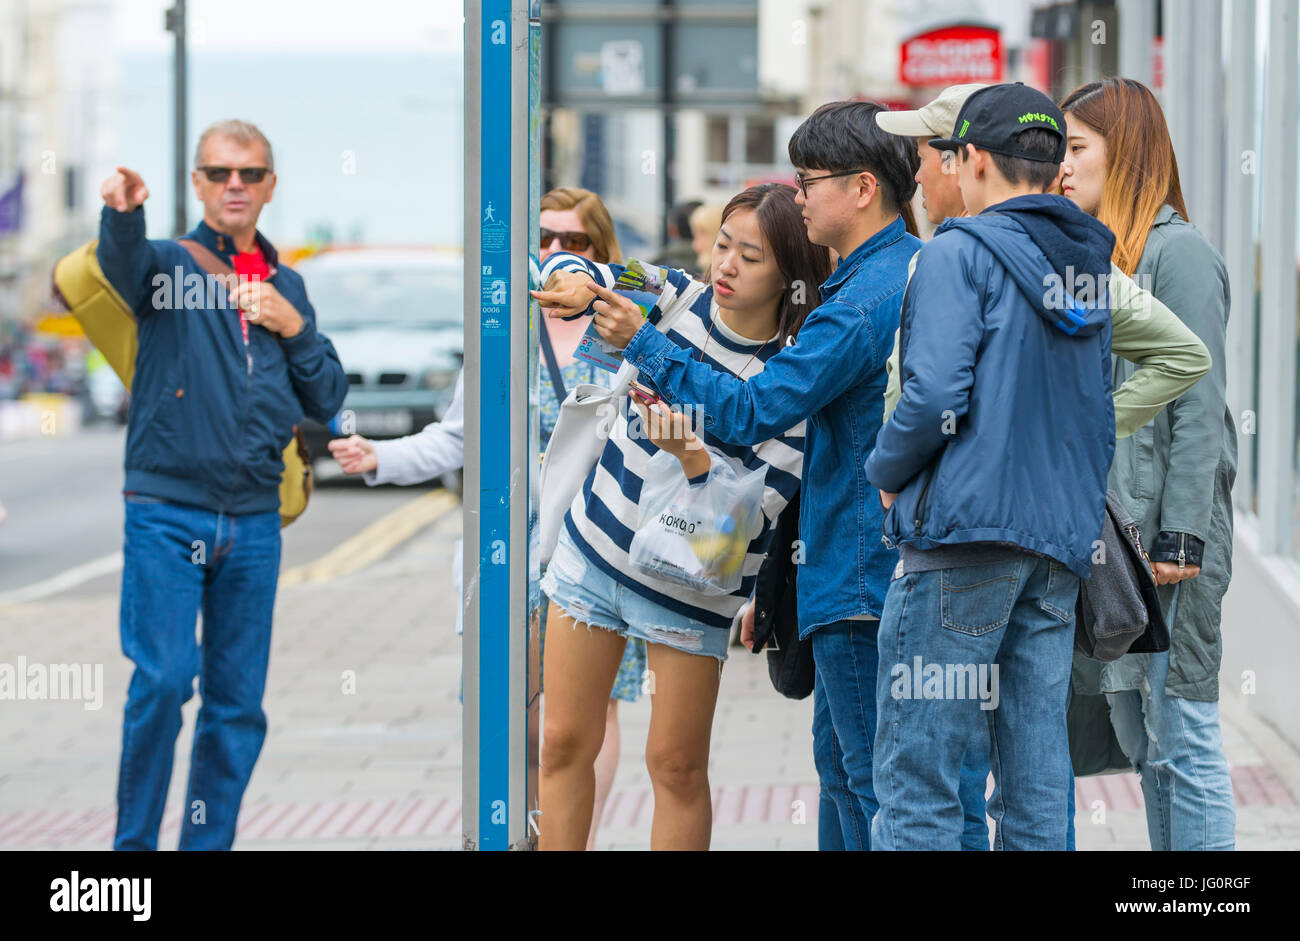 japanese-tourists-looking-at-a-street-map-in-a-city-to-find-directions-JG0RGF.jpg